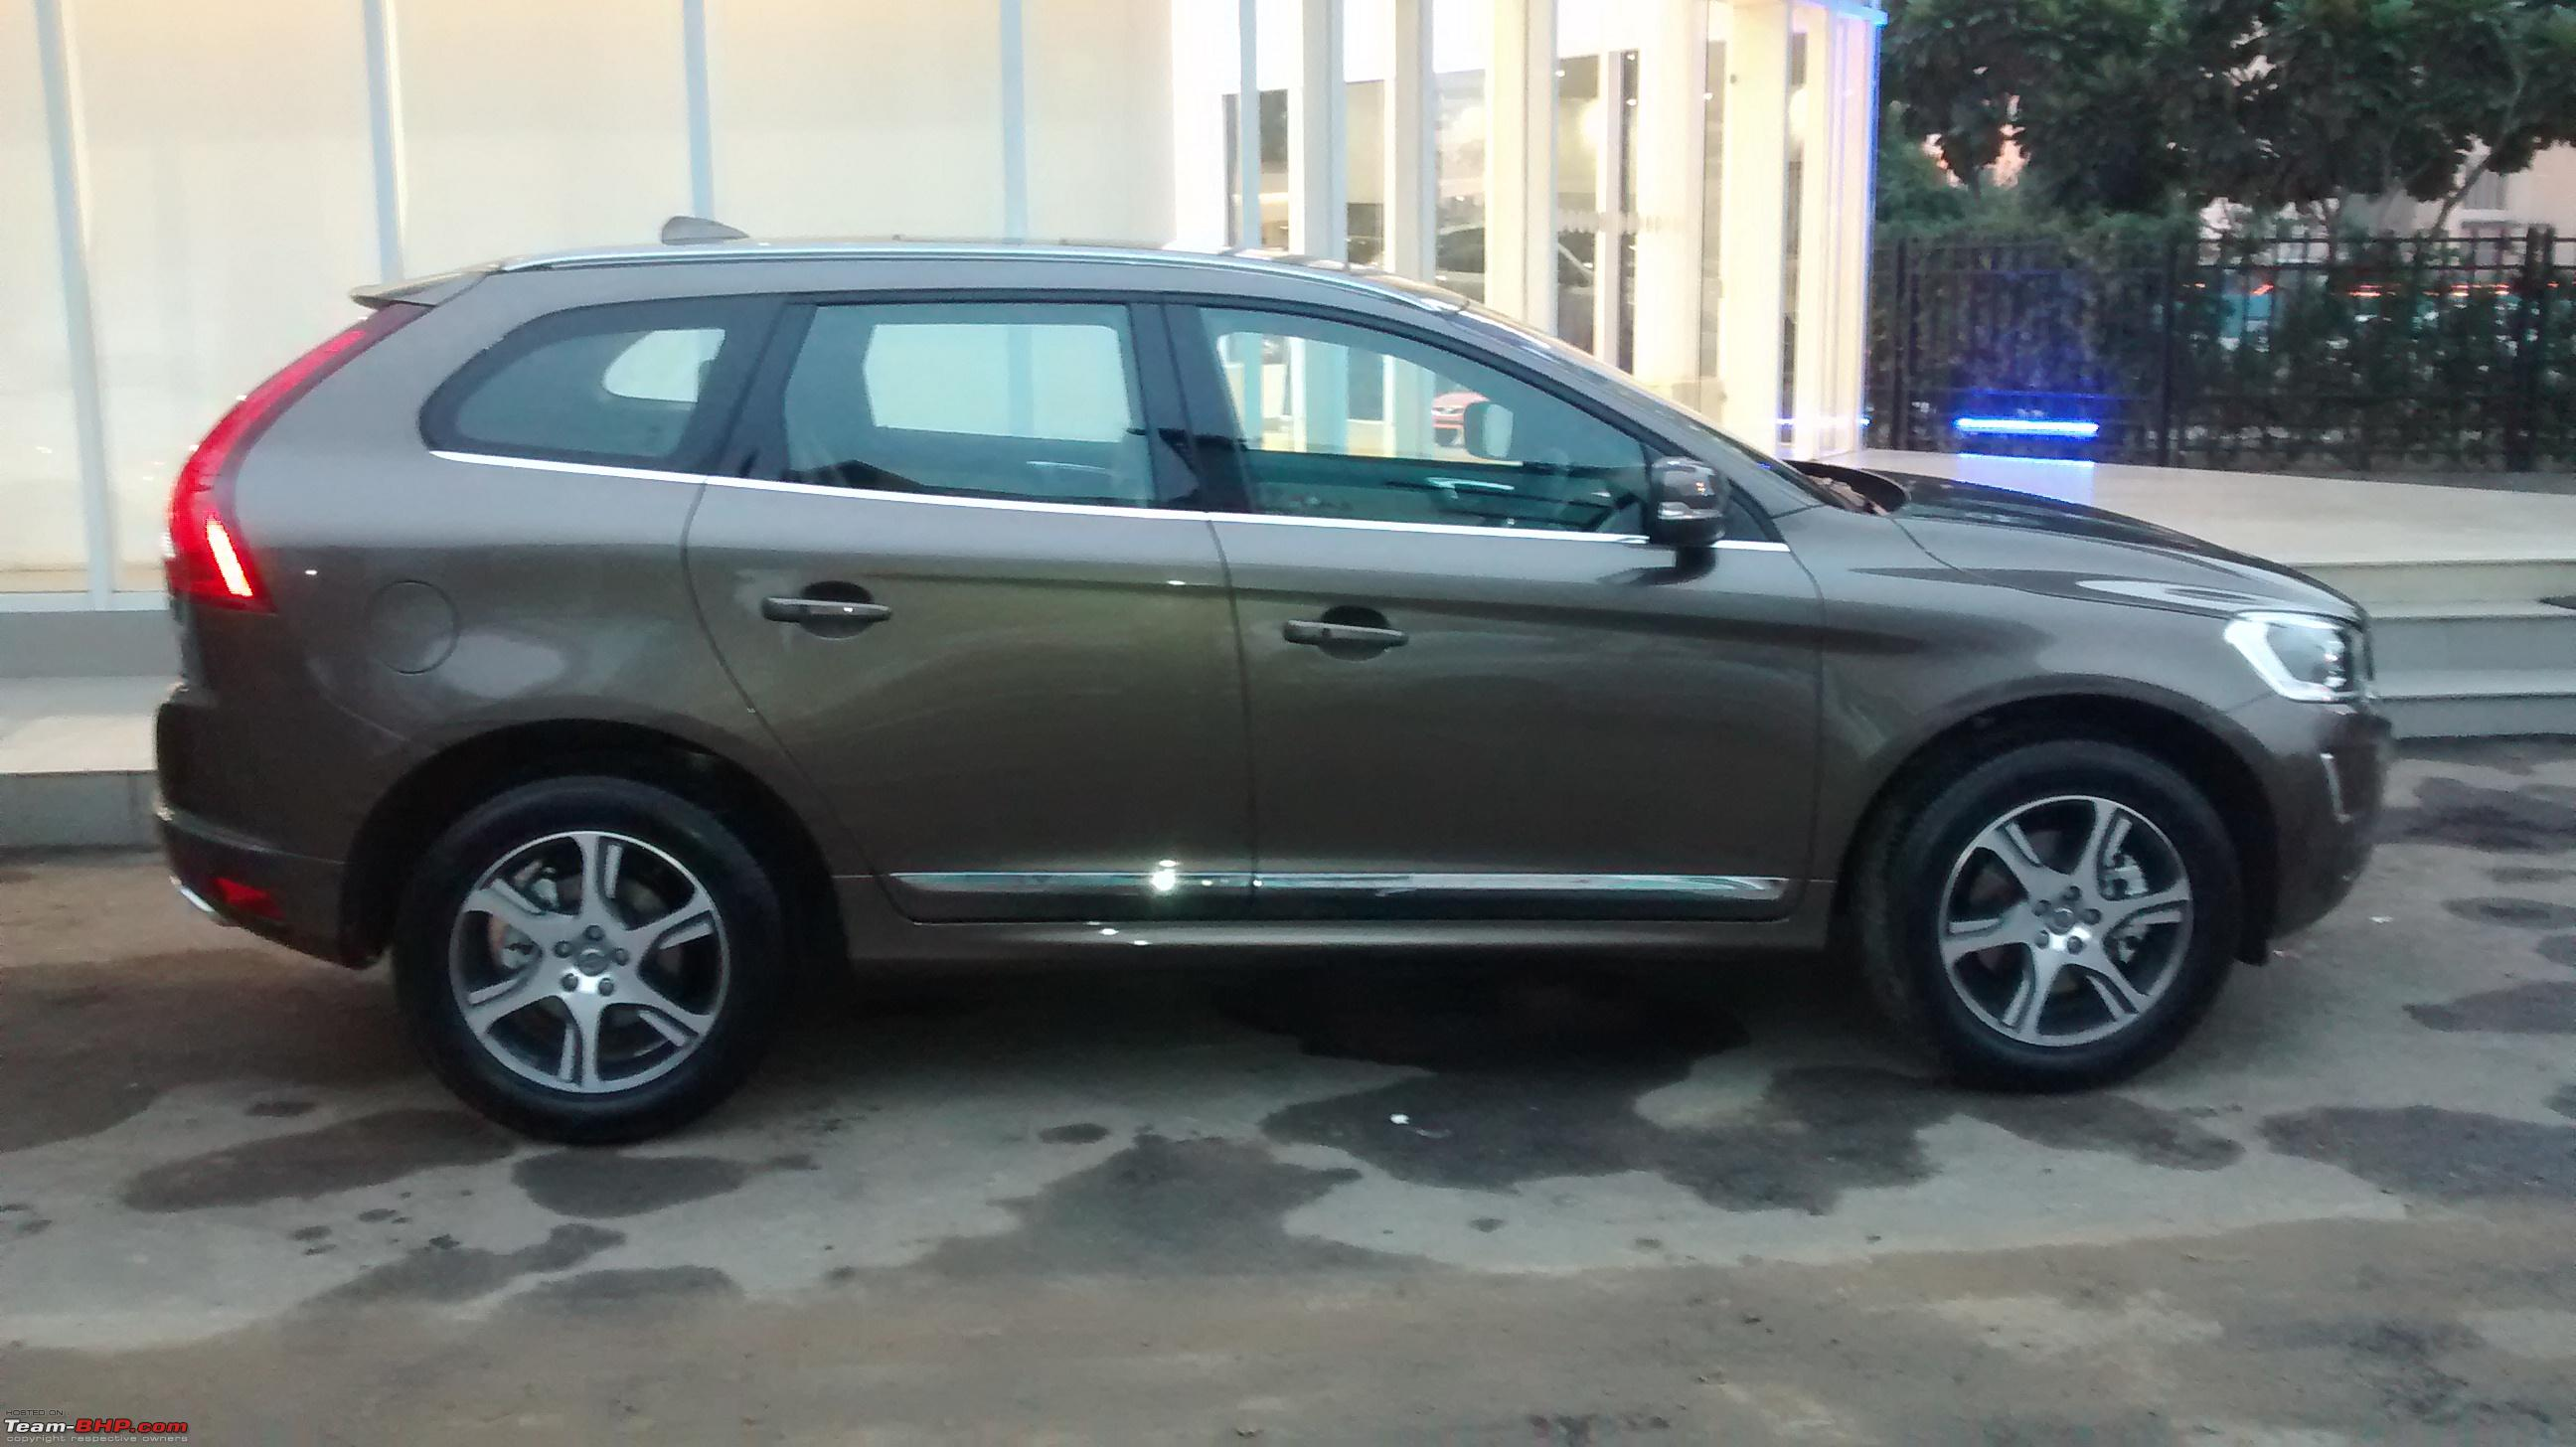 volvo xc60 d5 summum awd edit 30 000 km update page 3 team bhp. Black Bedroom Furniture Sets. Home Design Ideas